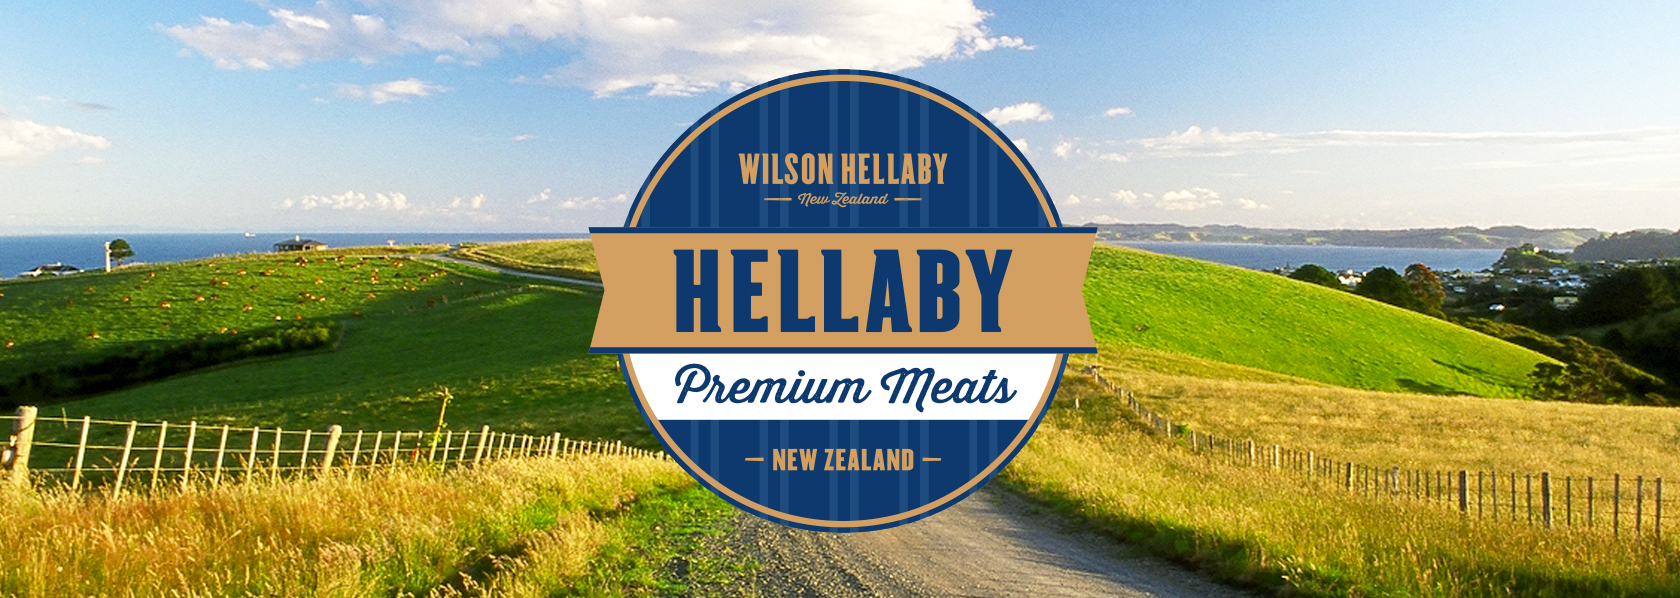 Wilson Hellaby Pig Butcher Diagram Premium Quality New Zealand Beef Lamb And Pork